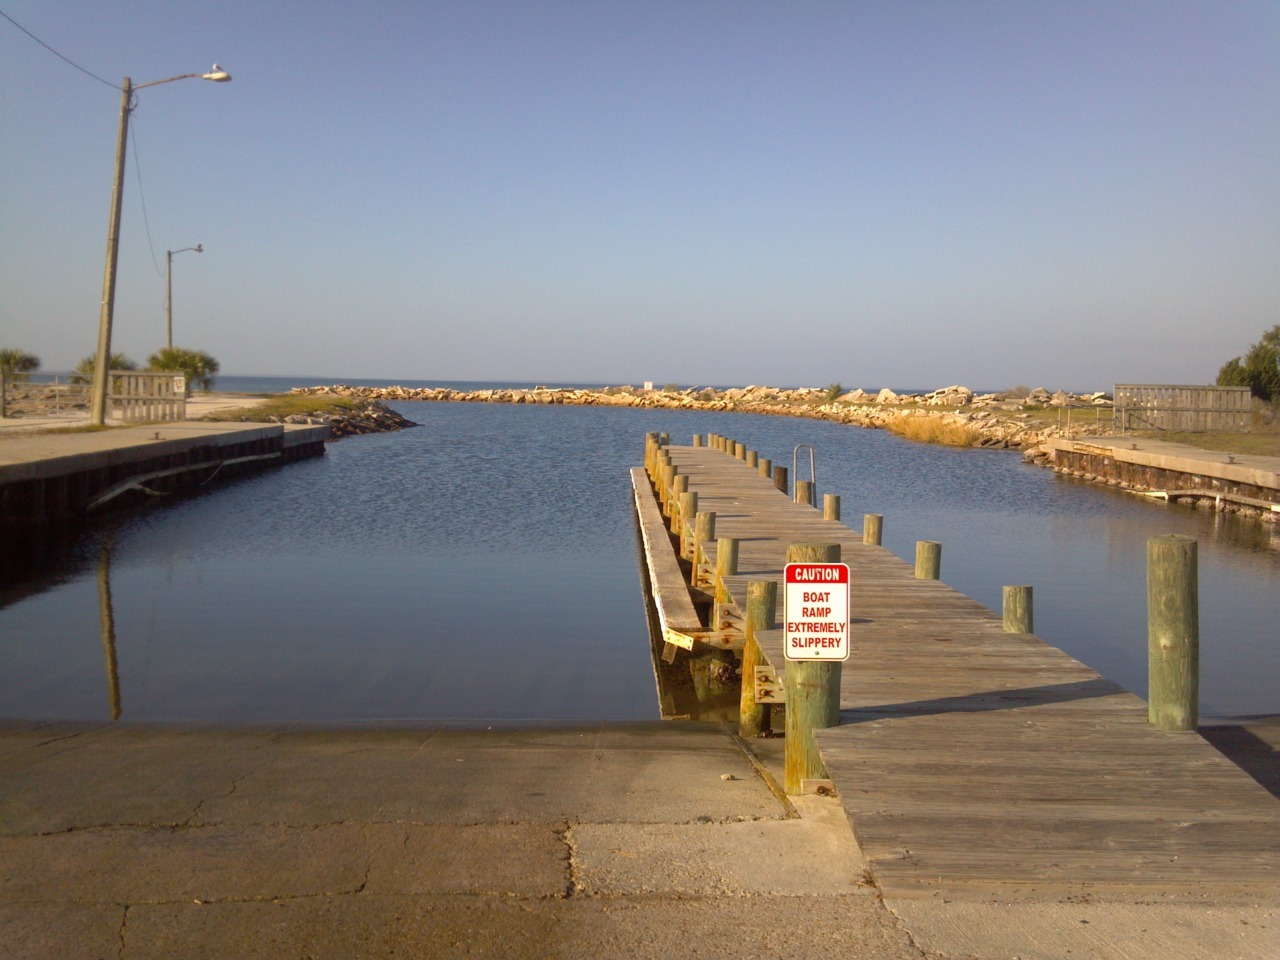 What a beautiful day in Port St. Joe! Who wants to go fishing with us?